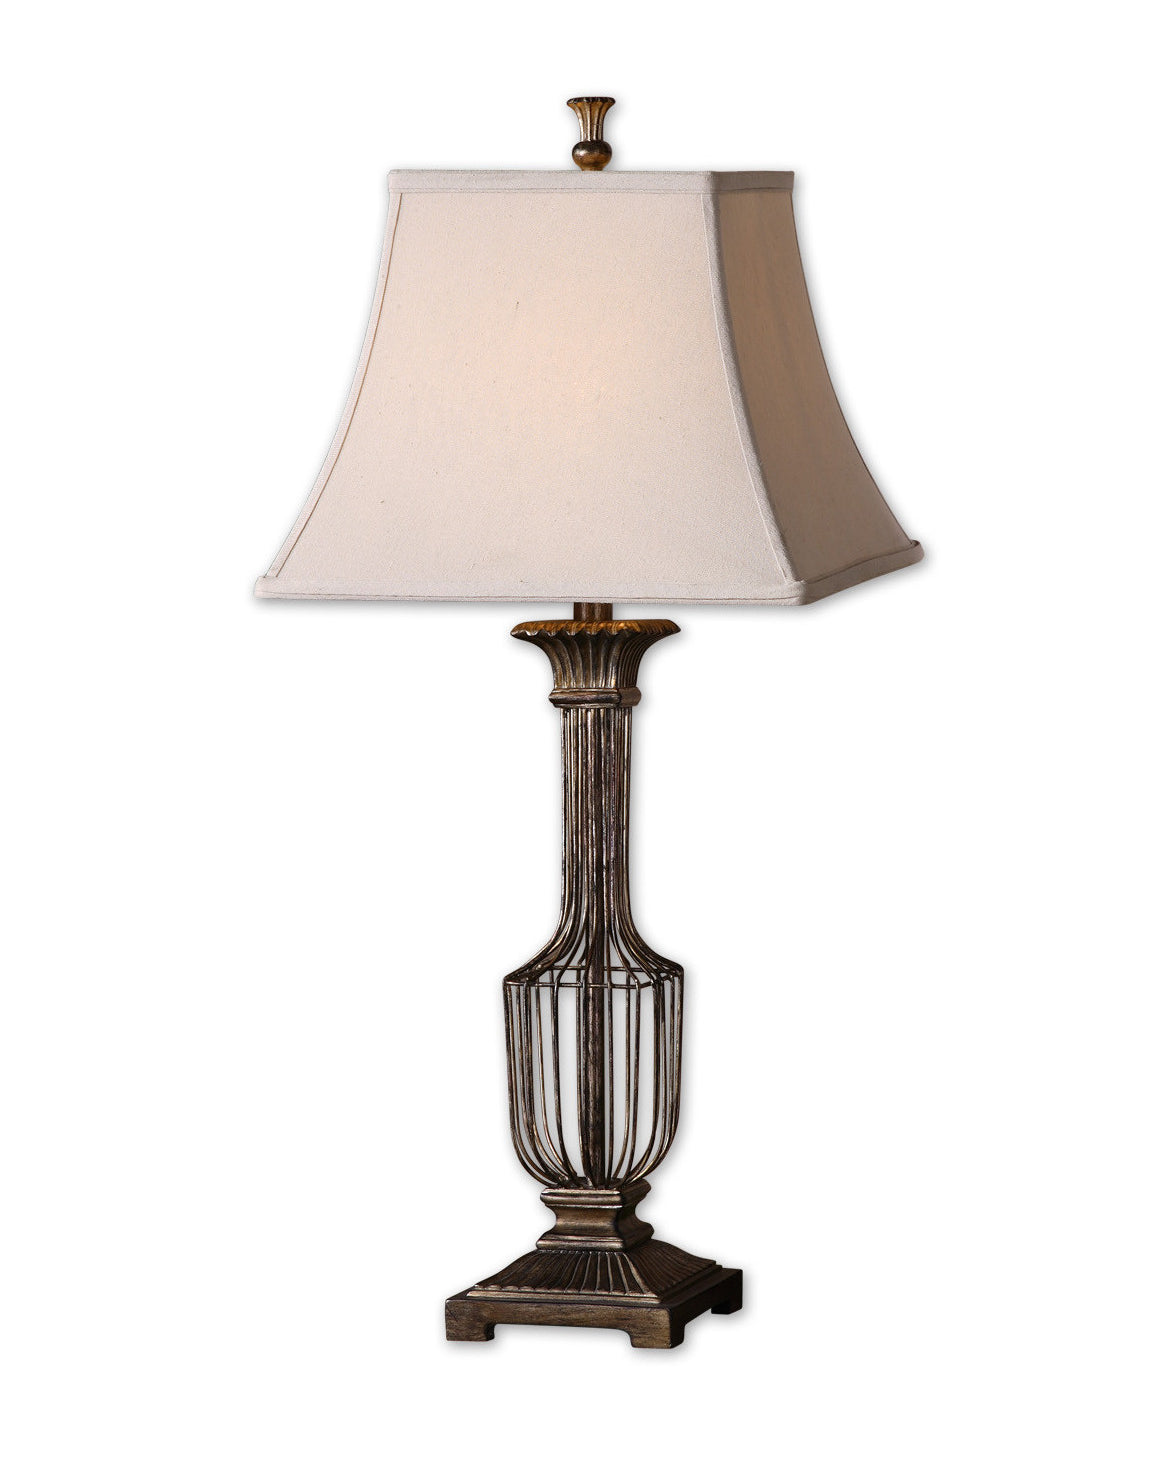 Anacapri wire gold leaf table lamp home comfort anacapri wire gold leaf table lamp aloadofball Image collections